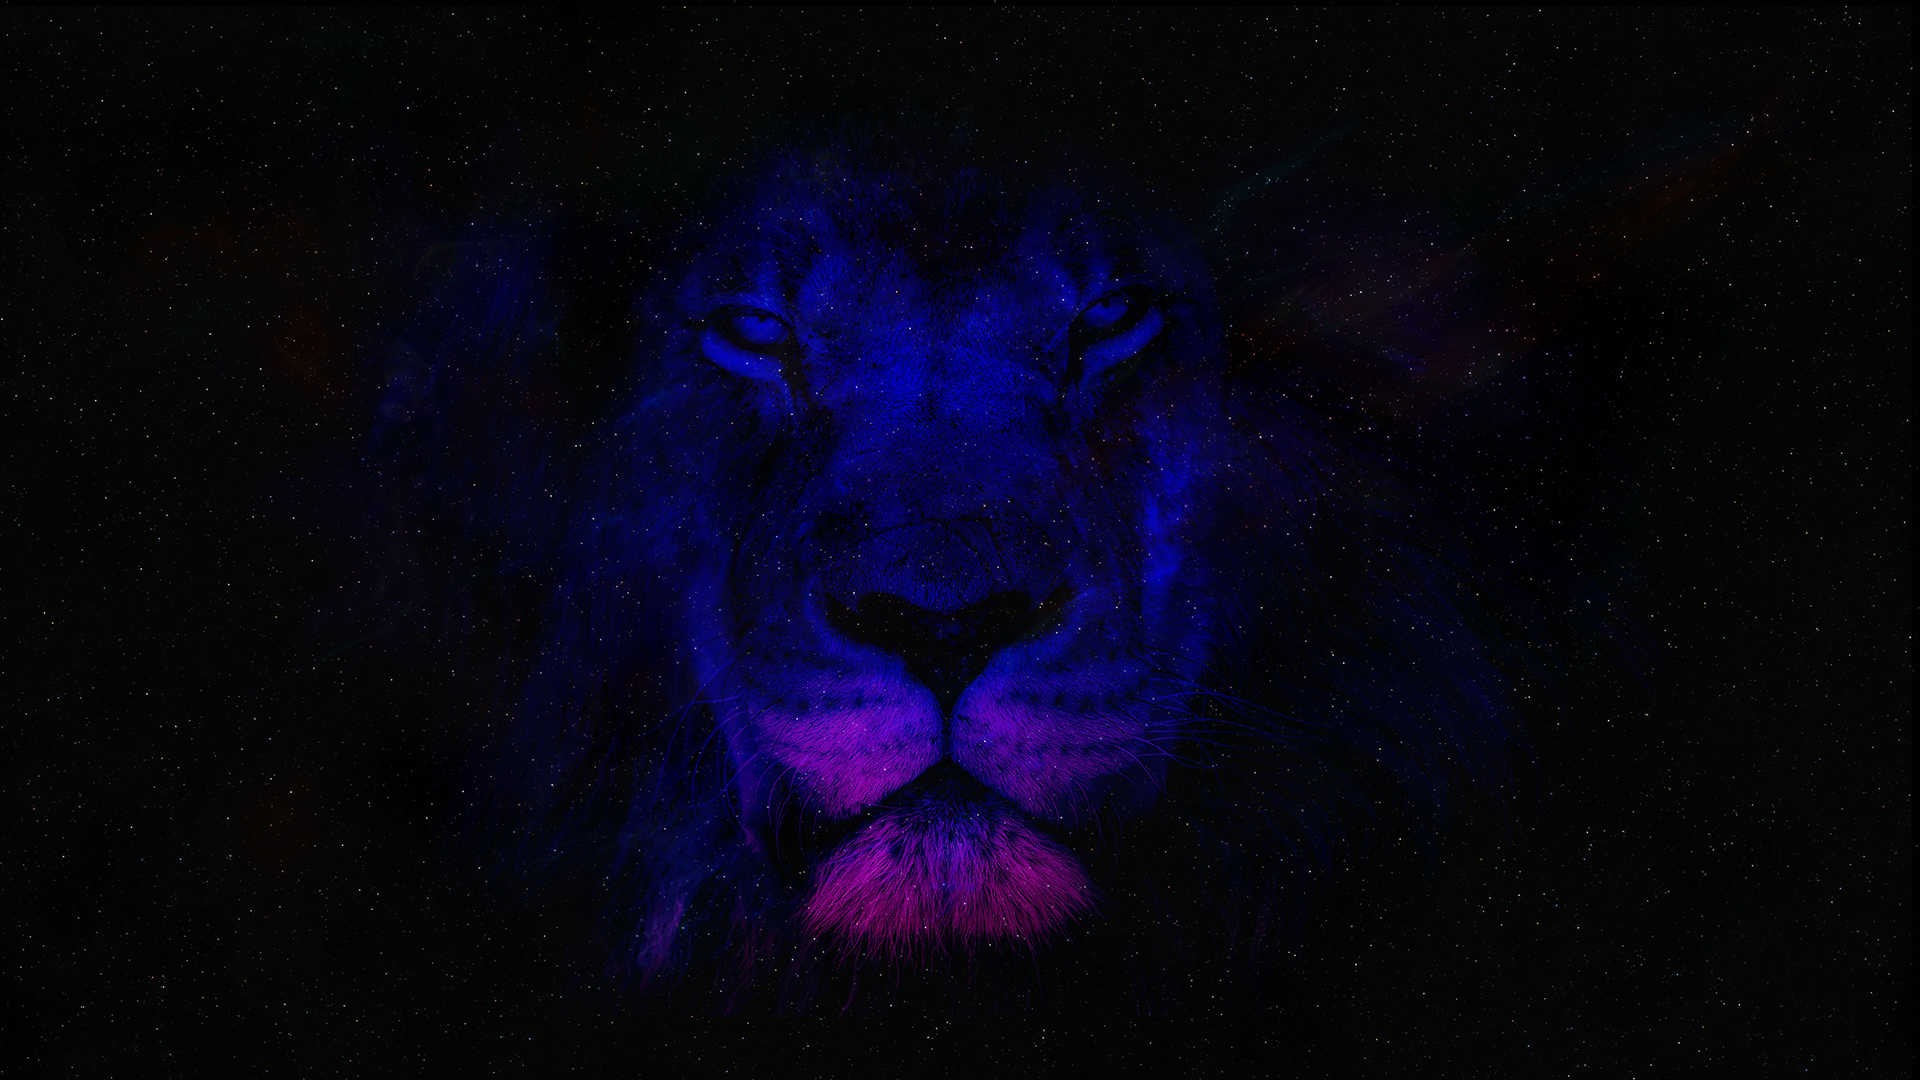 free space lion chromebook wallpaper ready for download